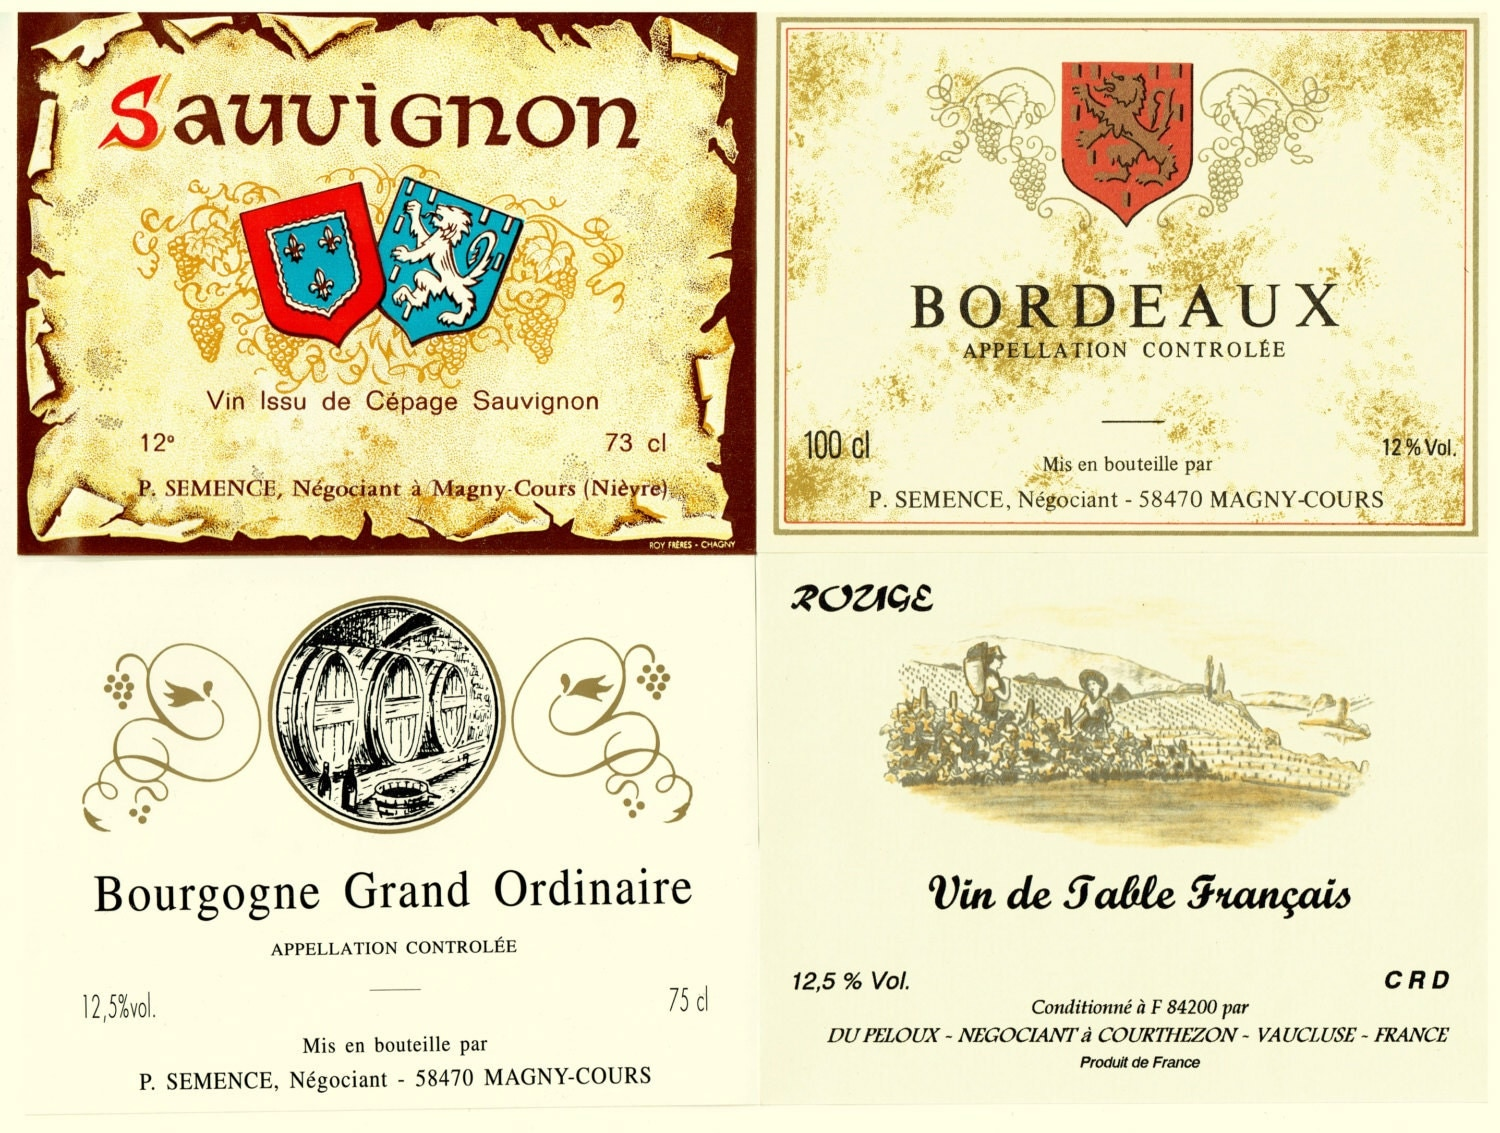 french wine essay 1 how did the french become the dominant competitors in the increasingly global wine industry for centuries what sources of competitive advantage were they able to develop to support their exports where were they vulnerable by the christian era, wine became part of the liturgical services and monasteries planted.